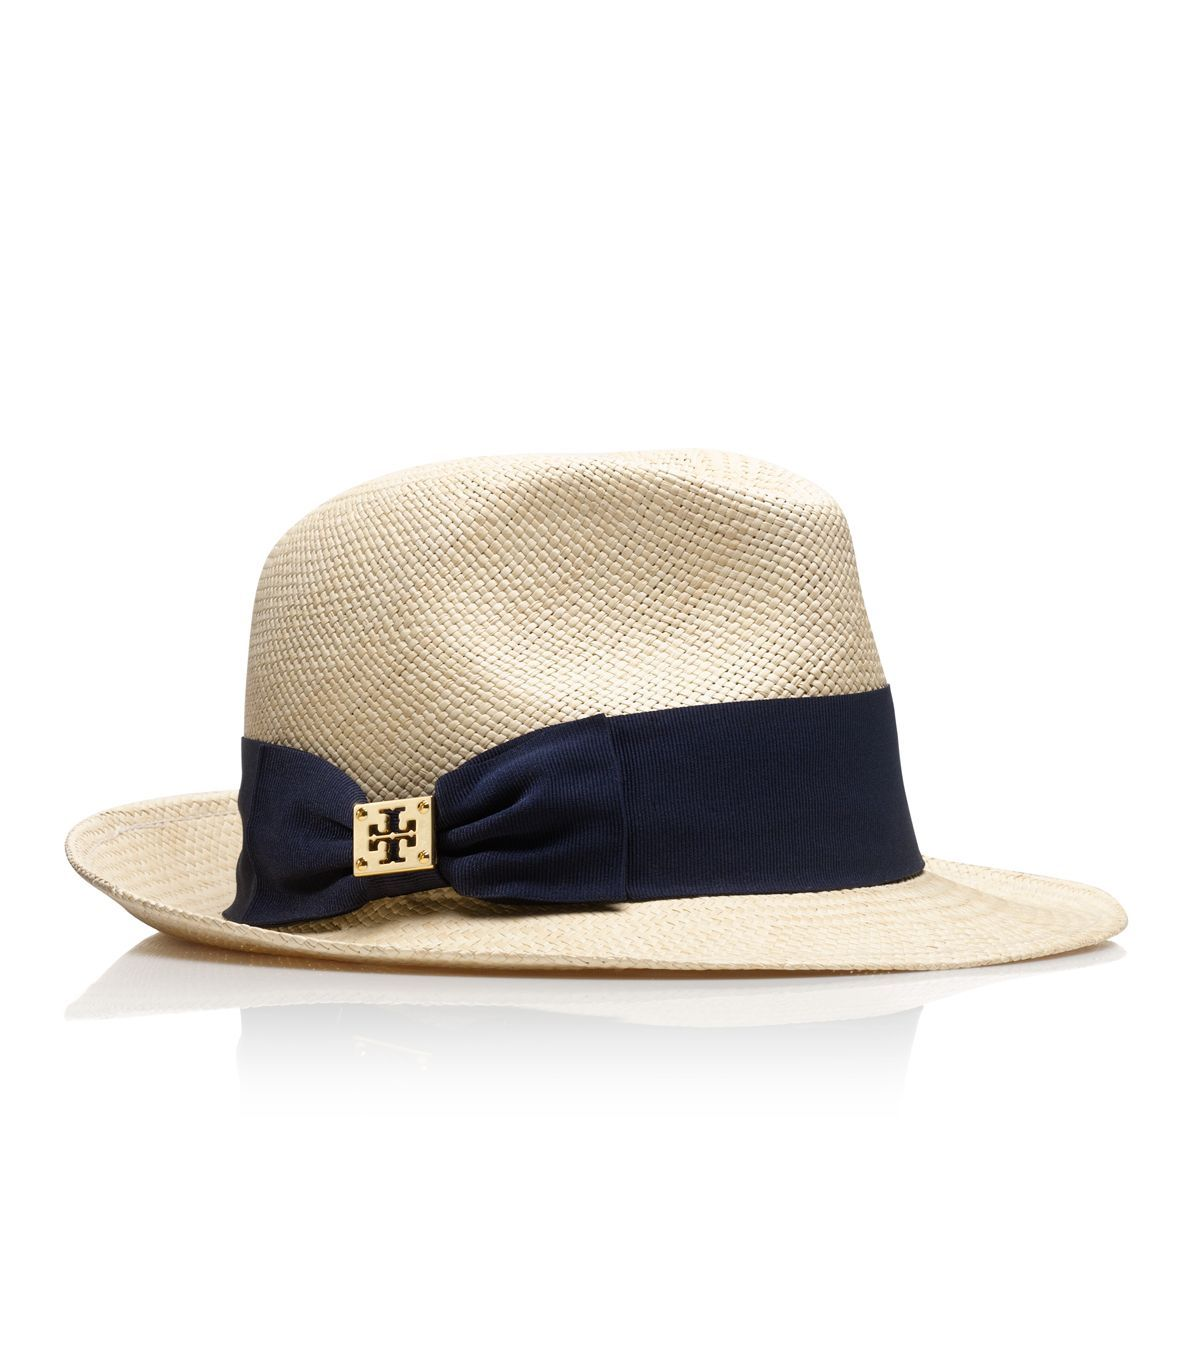 6a228bec6 Tory Burch Fedora. I so so so so LOVE THIS HAT!!!!! | Fashion in ...